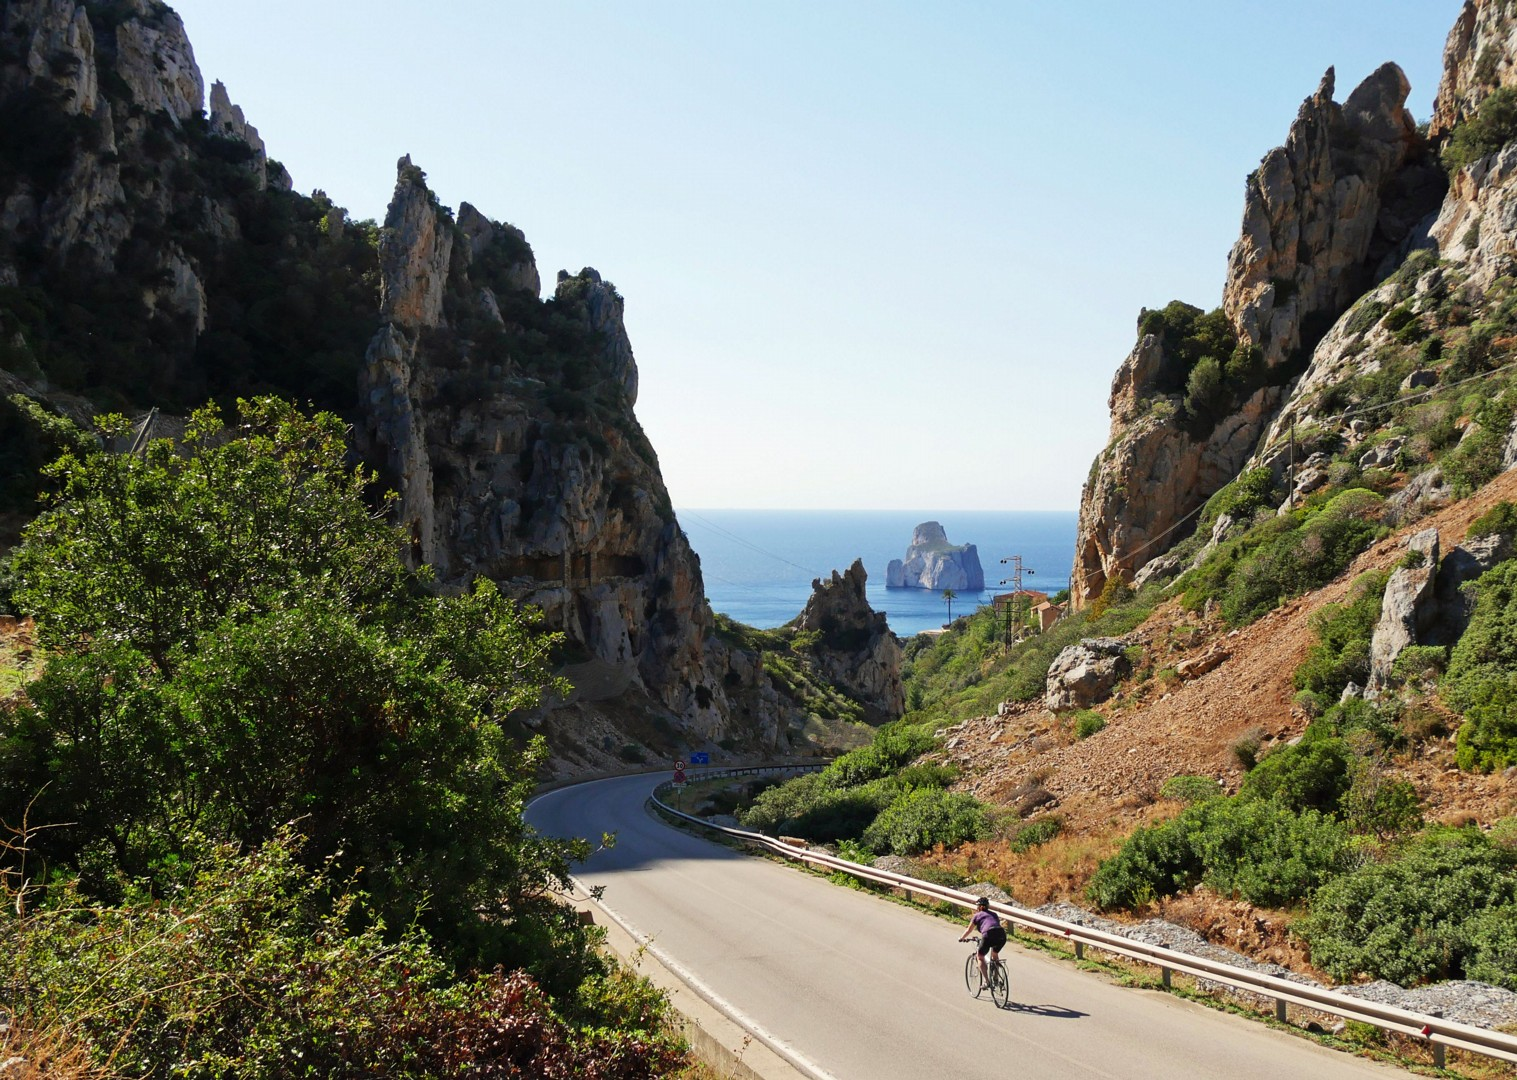 pan-di-zucchero-sea-cliffs-sardinia.jpg - Italy - Sardinia - Island Flavours - Self-Guided Leisure Cycling Holiday - Leisure Cycling